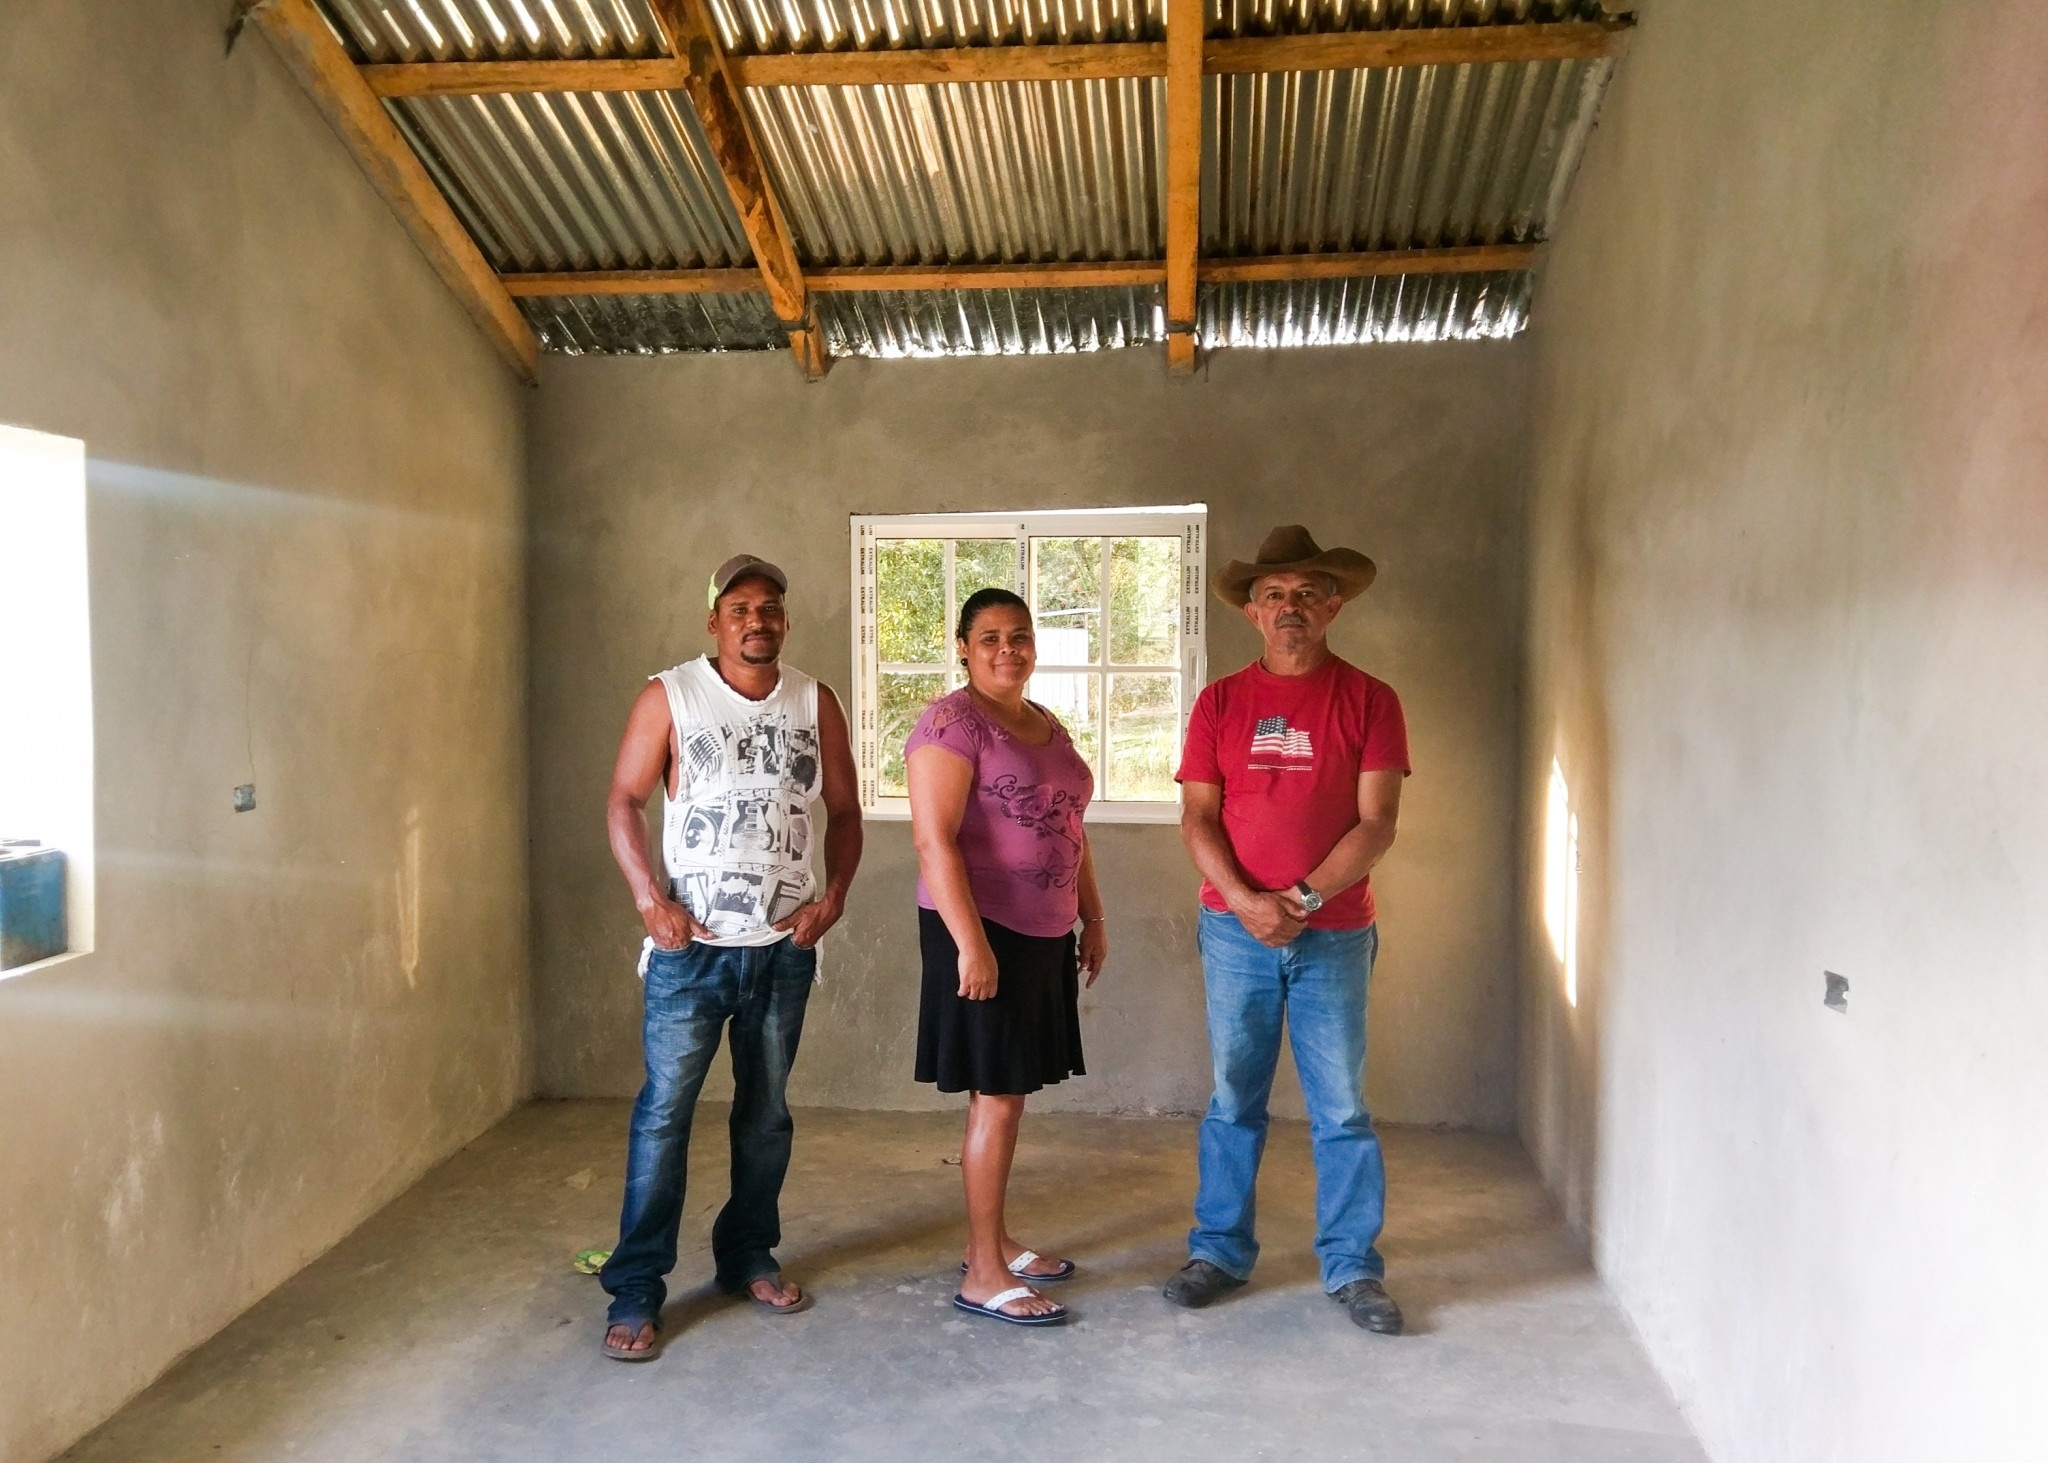 (April) Orica, Honduras-- Roger, Elena and their two kids lived in an unsafe home with walls that exposed the outdoors. Iglecia Centro Americana La Fe served this family by installing new windows, floors, fixing the cracked walls and providing electricity! The couple was not open to hearing the gospel message before the construction but during the project the pastor was able to share with Jesus' love with them. They now accept visits from the pastor and are building a relationship with their local church.